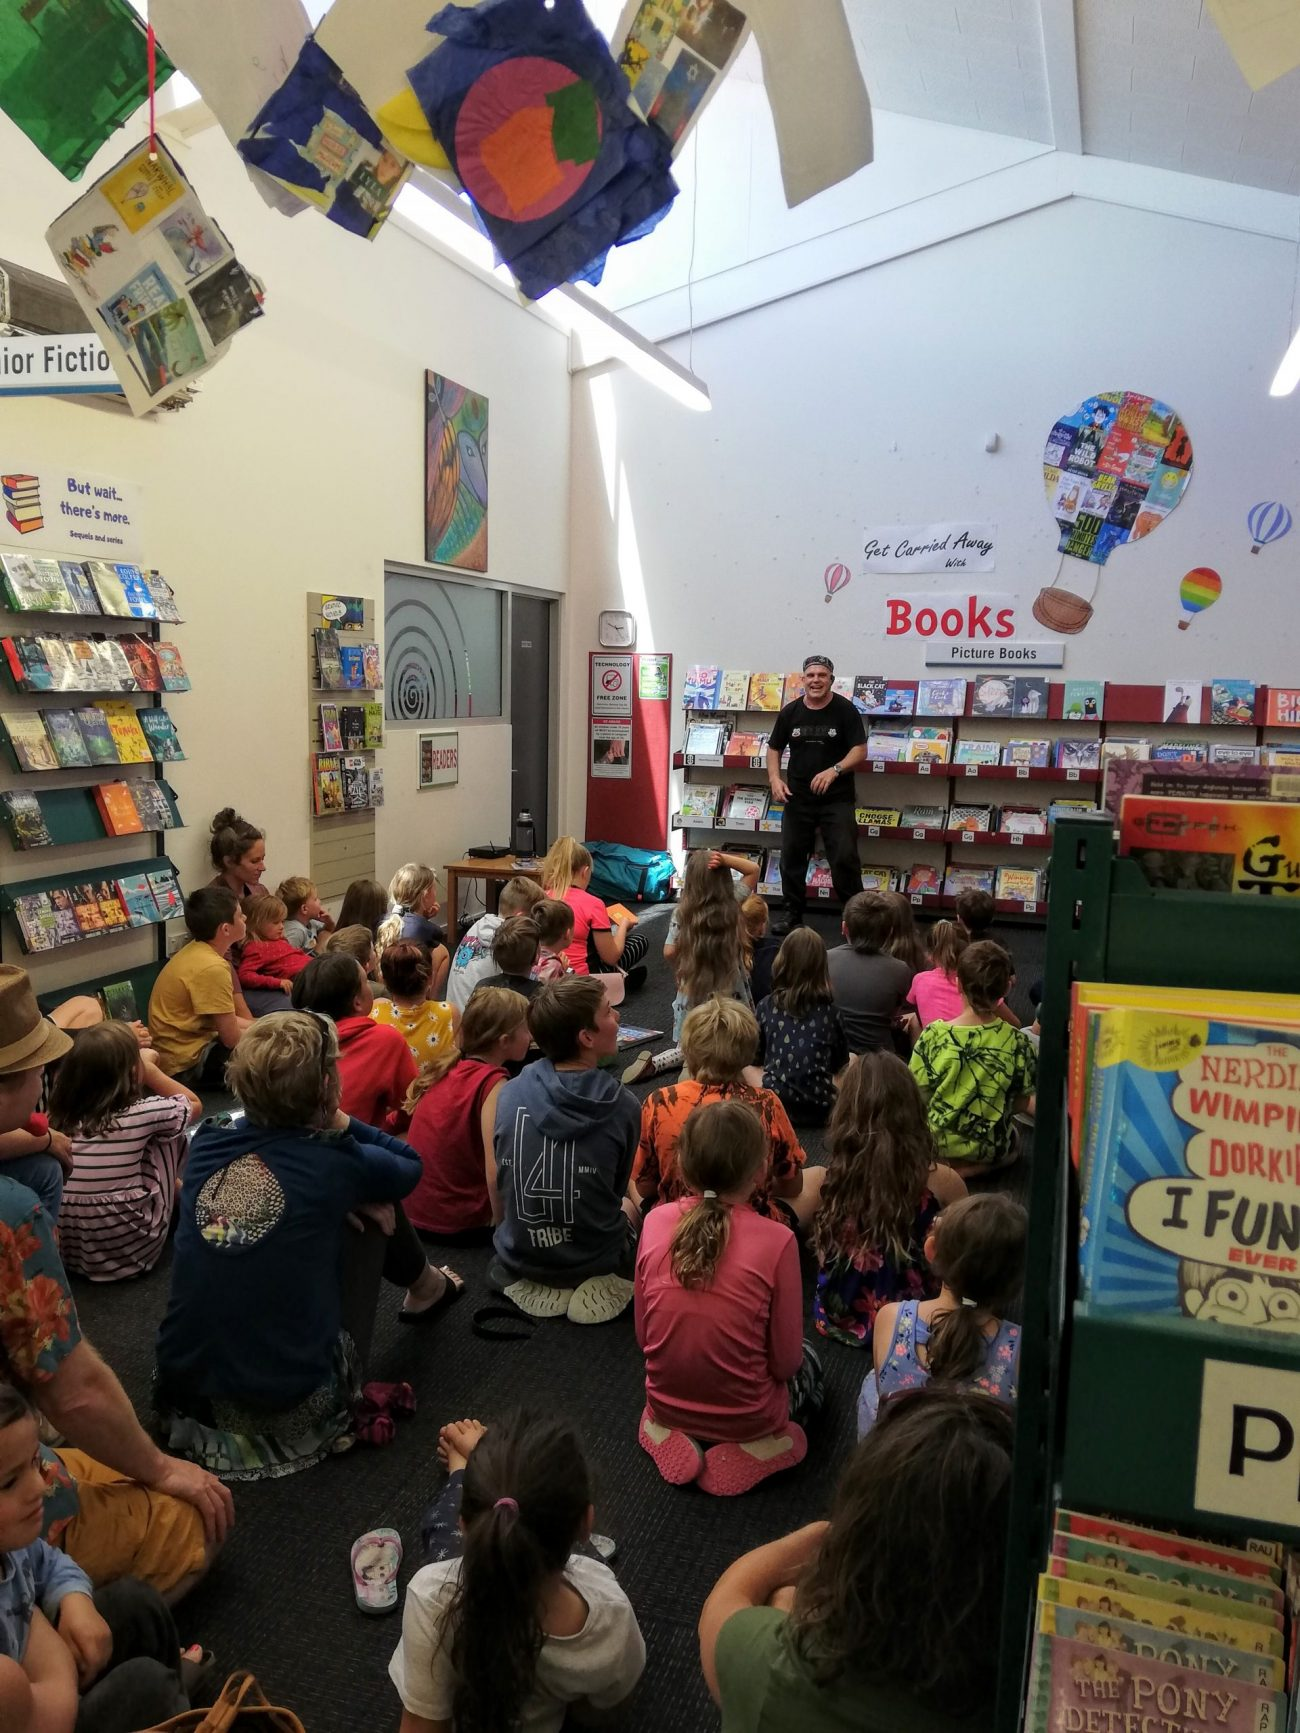 School Holiday Fun at the Library